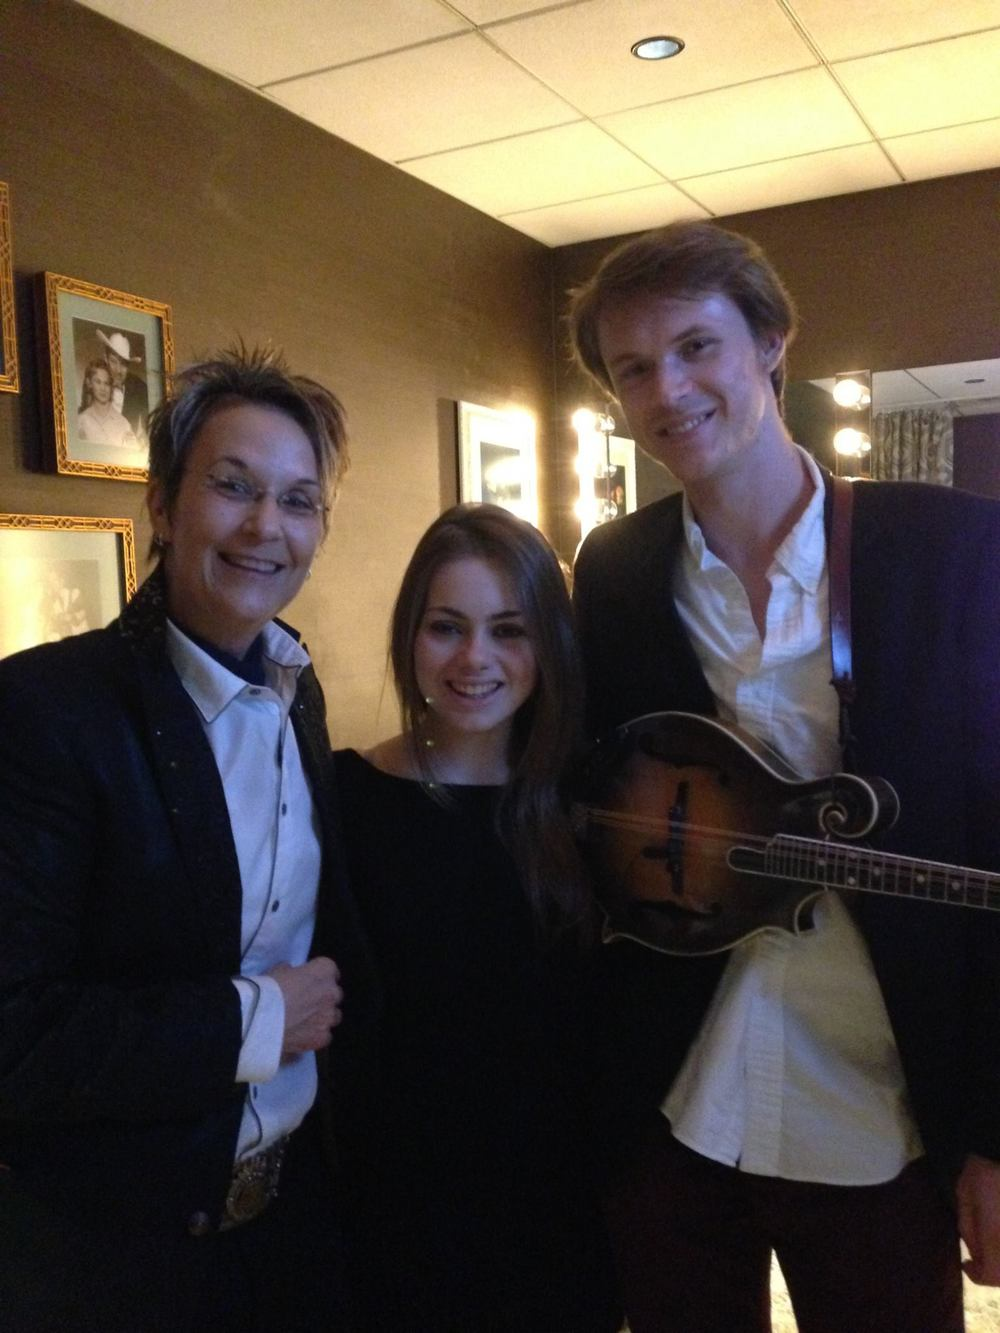 Mary Gauthier, Kate Lee & Forrest O'Connor  Backstage at the Grand Ole Opry